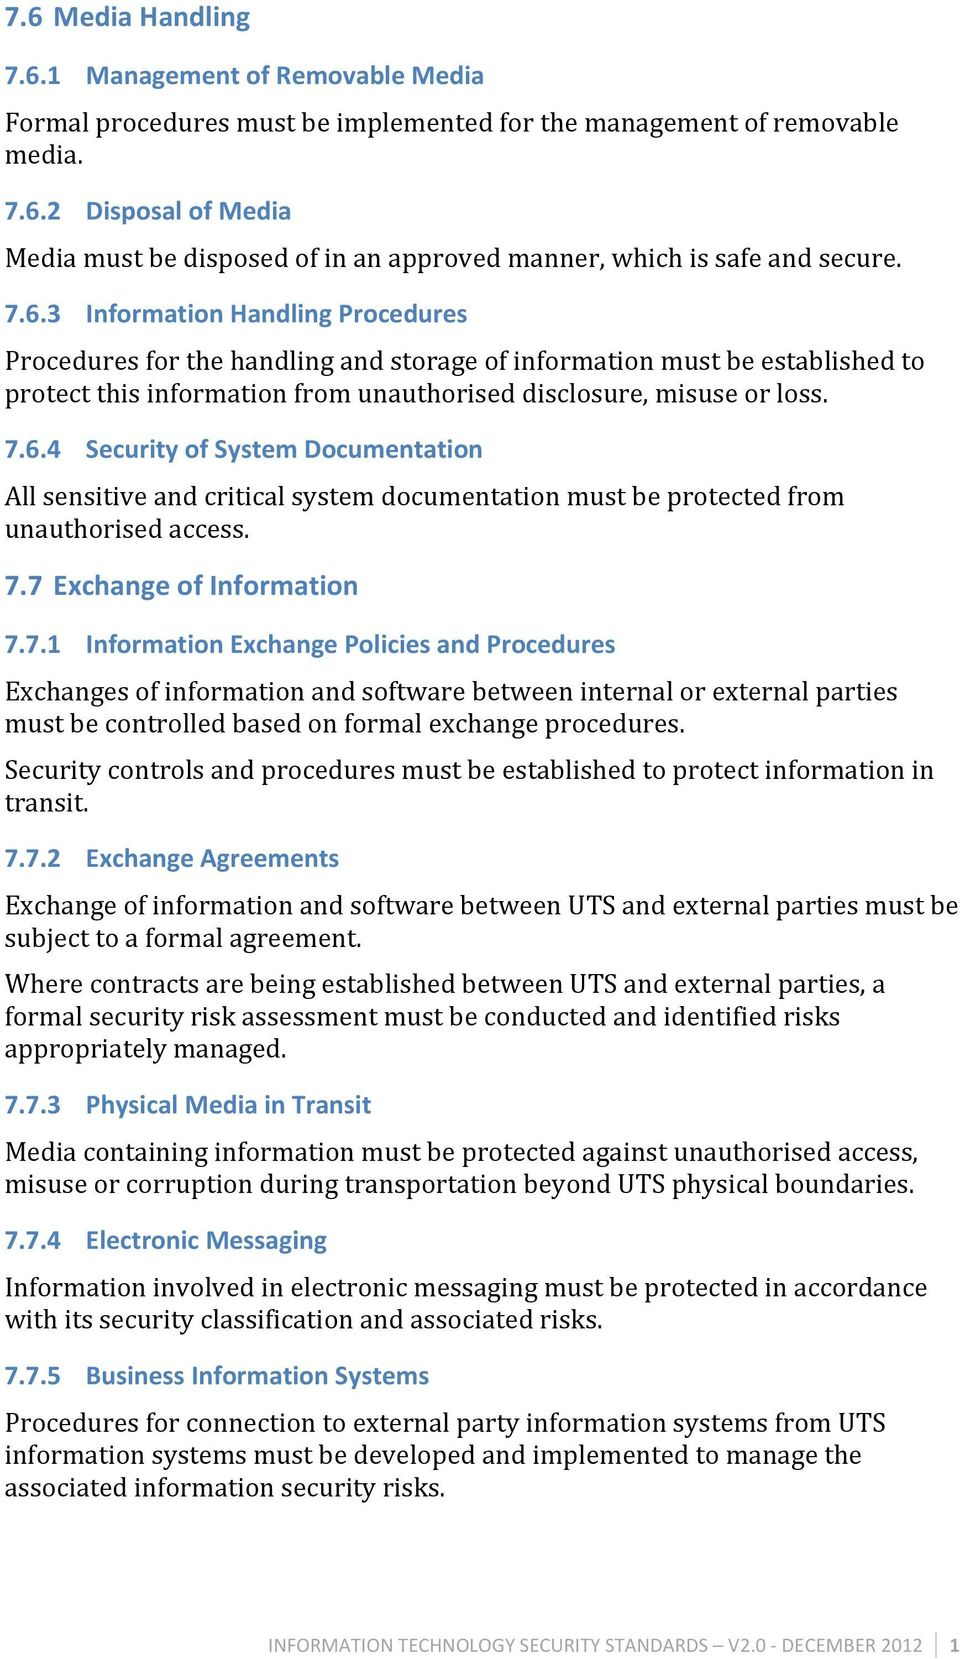 7.7 Exchange of Information 7.7.1 Information Exchange Policies and Procedures Exchanges of information and software between internal or external parties must be controlled based on formal exchange procedures.